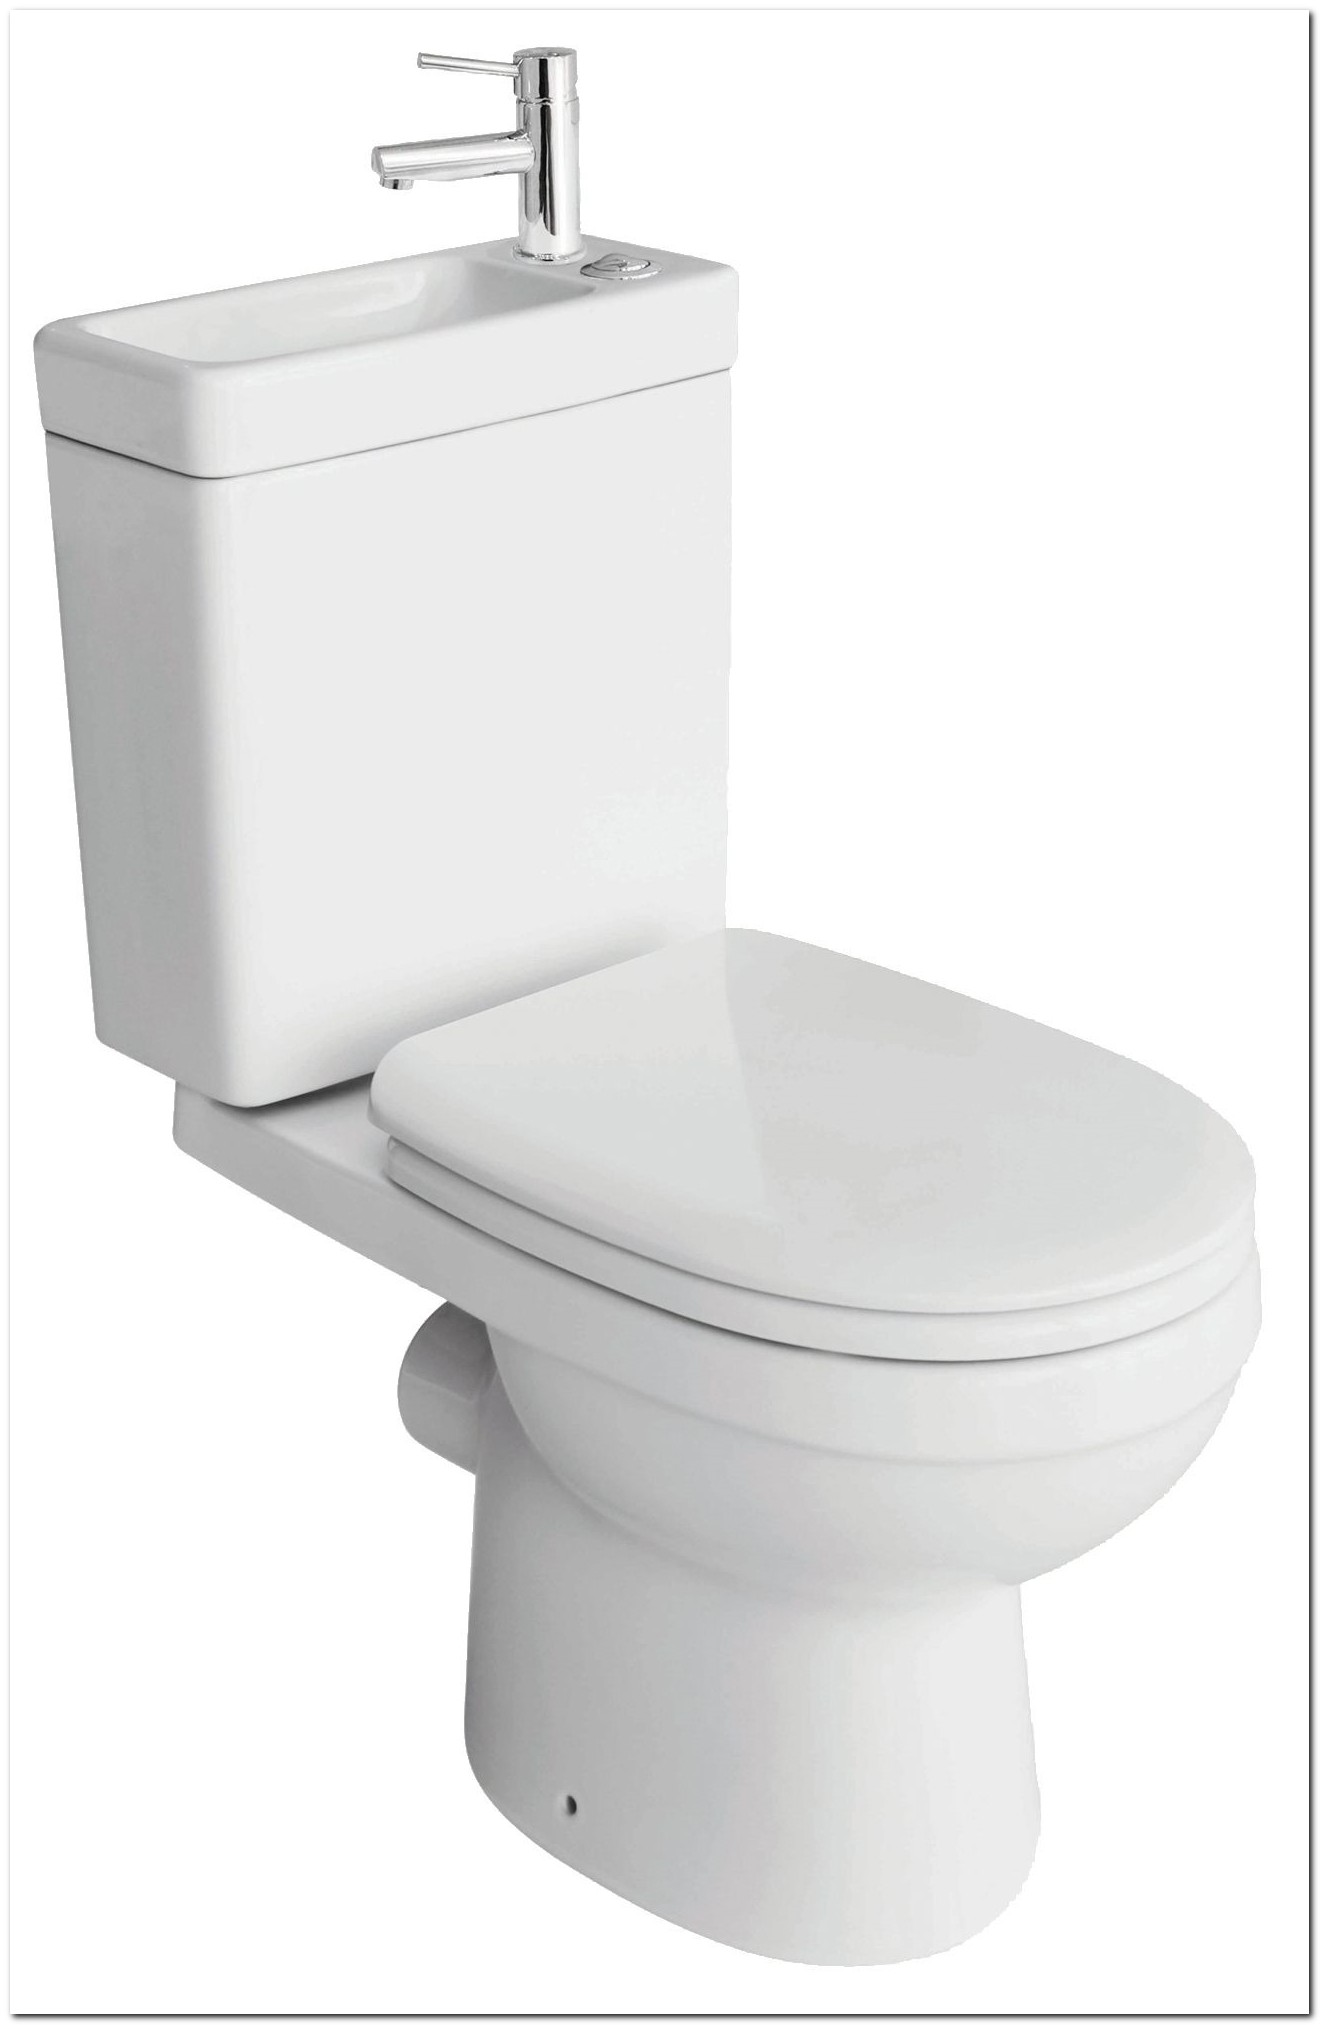 Cooke And Lewis Toilet And Sink Combined